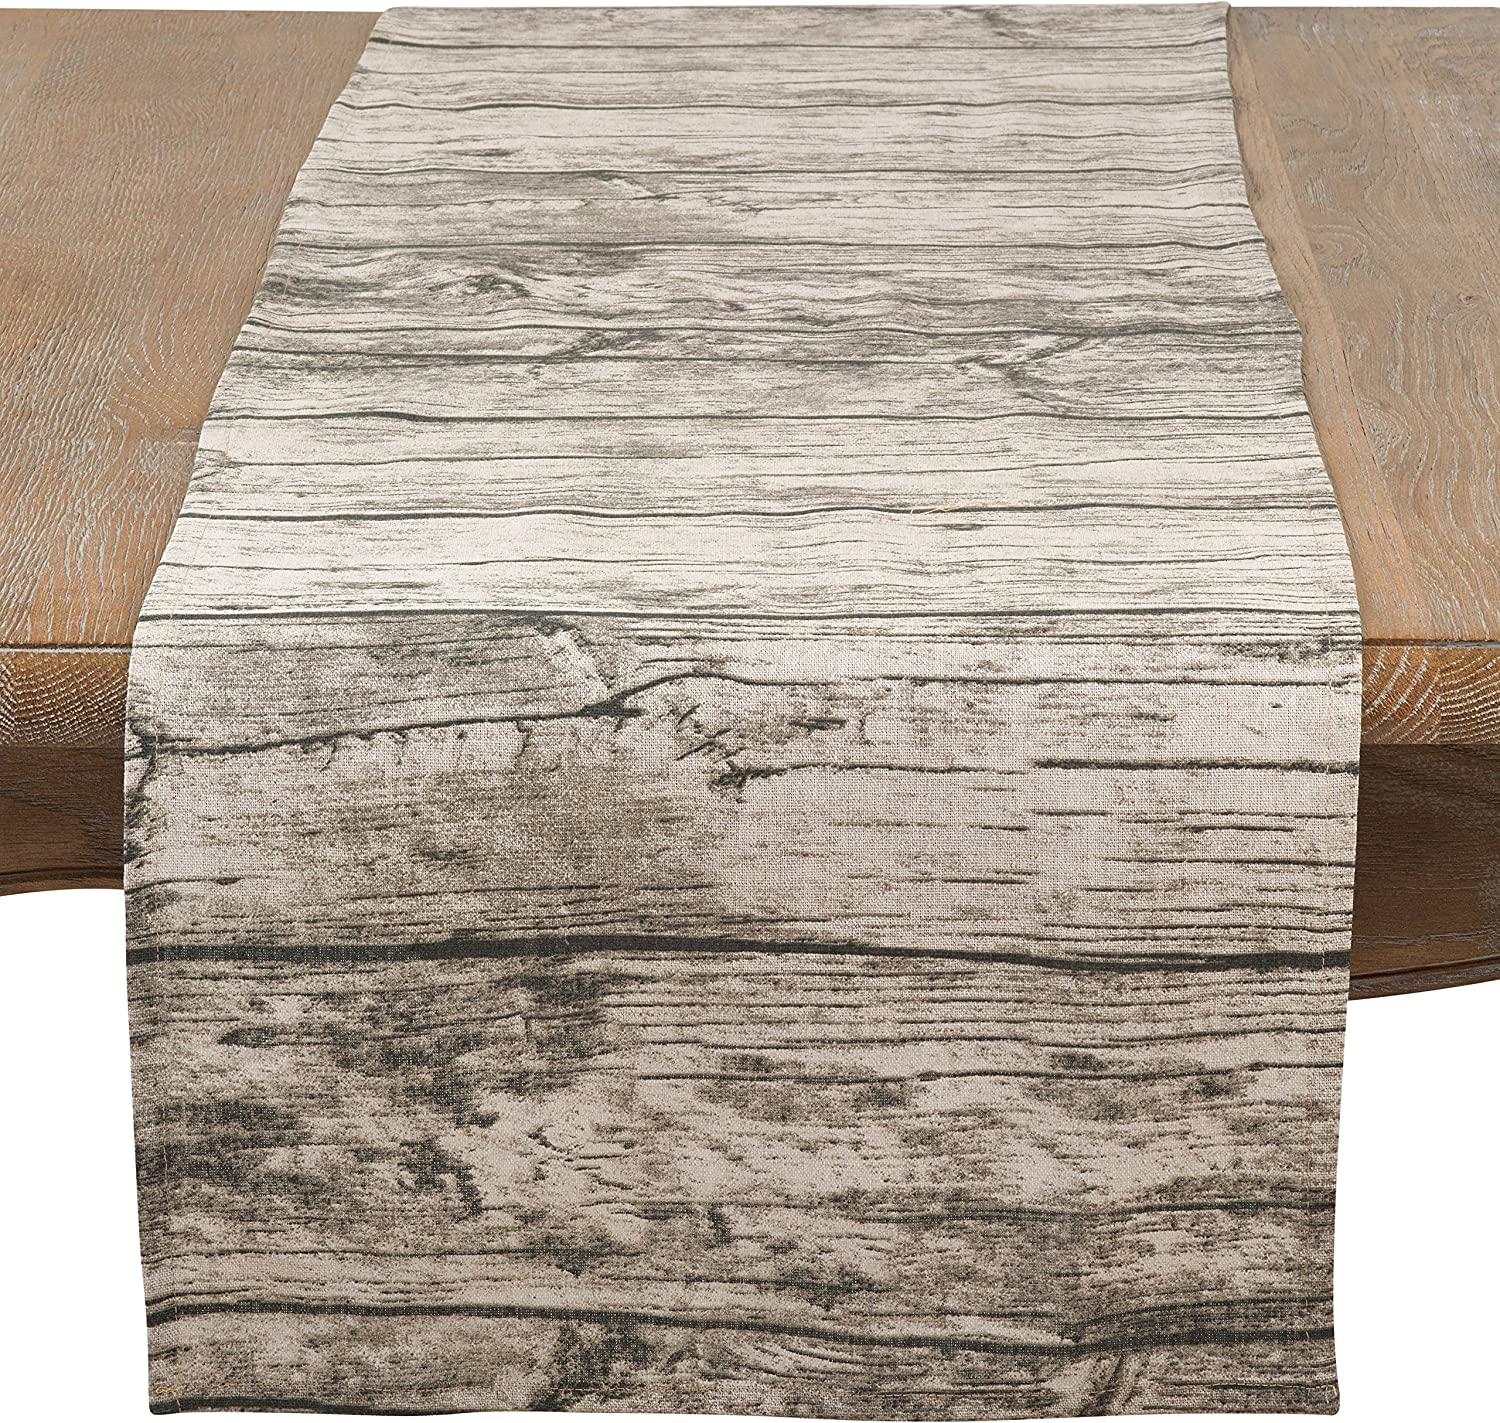 SARO LIFESTYLE Lignum Vitae Collection Printed OFFer Table Design sold out Wood